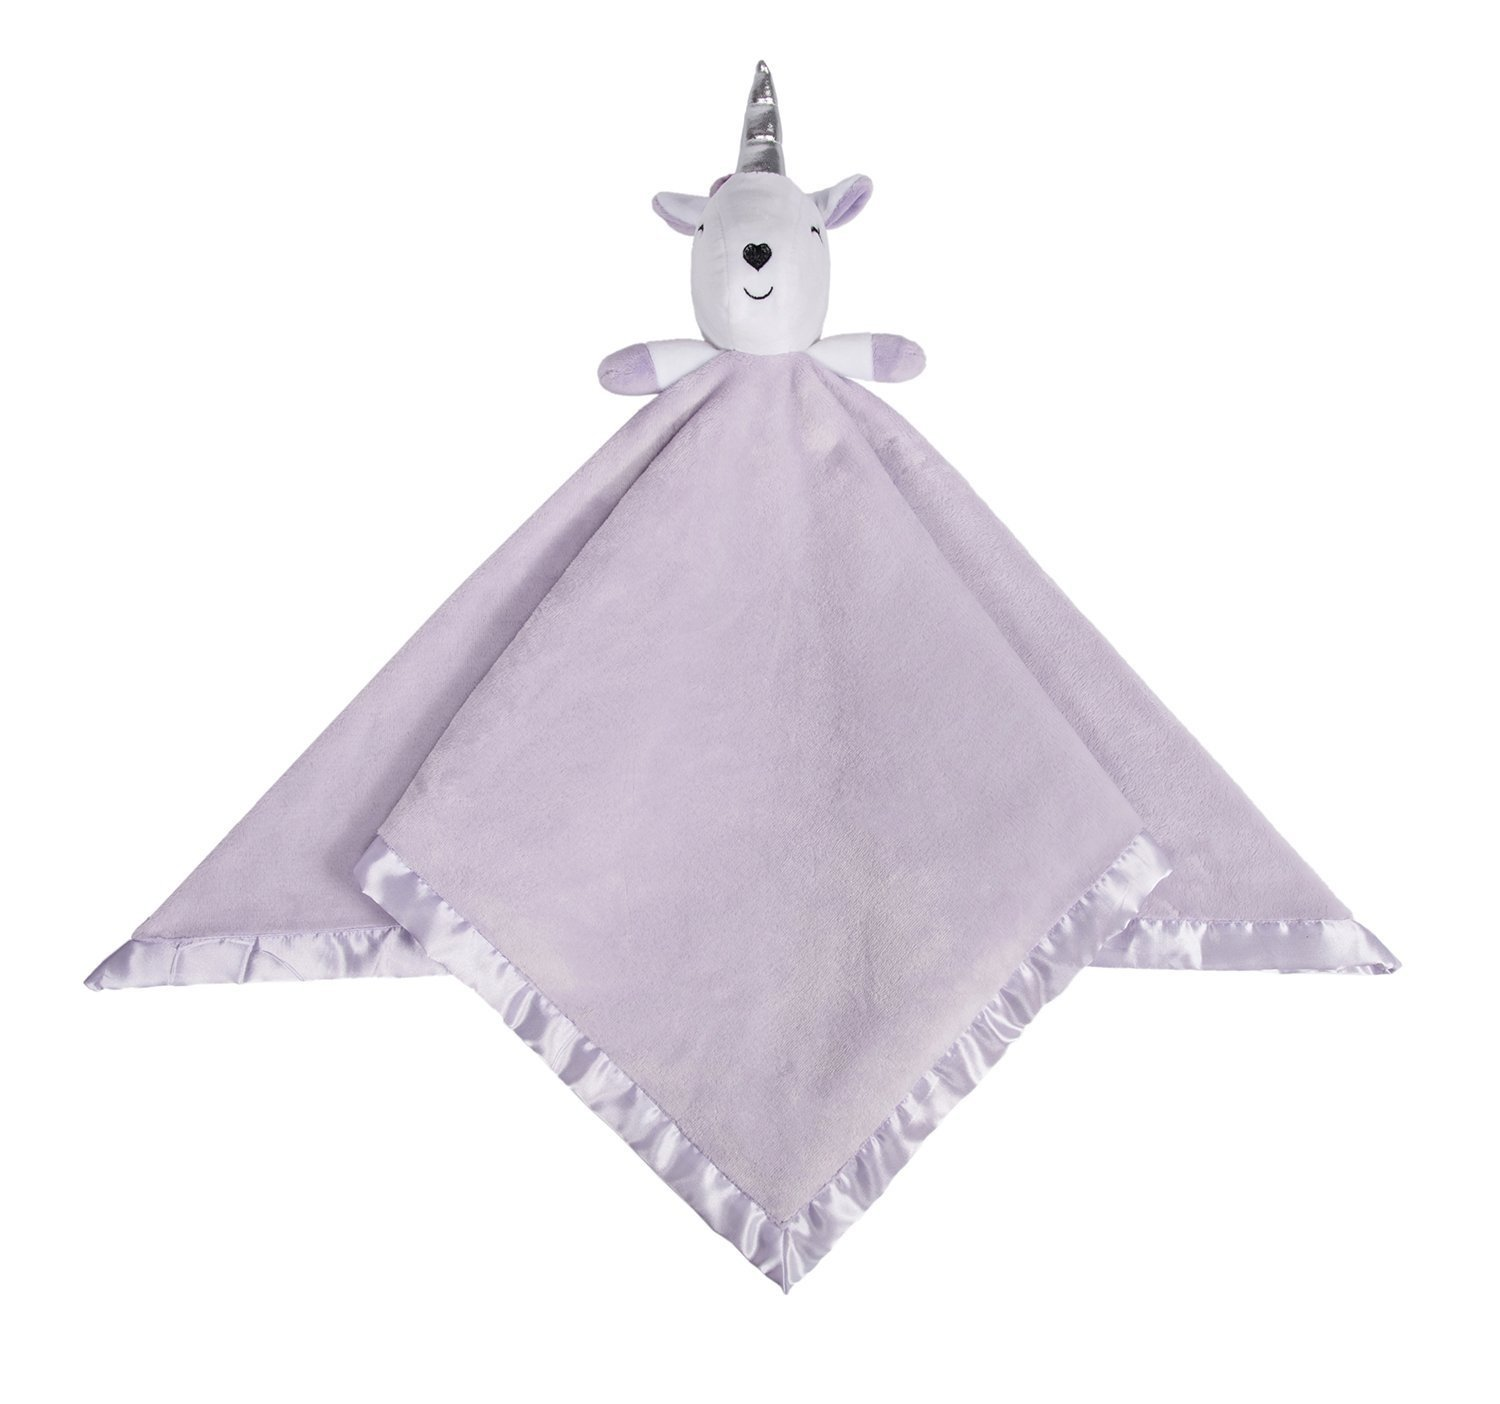 Baby Unicorn Comfort Blanket Security Blankie Warm Lovely Cute Fleece Flannel Blanket, Soft Toy, Baby/Infant Toy, Blue Ataya